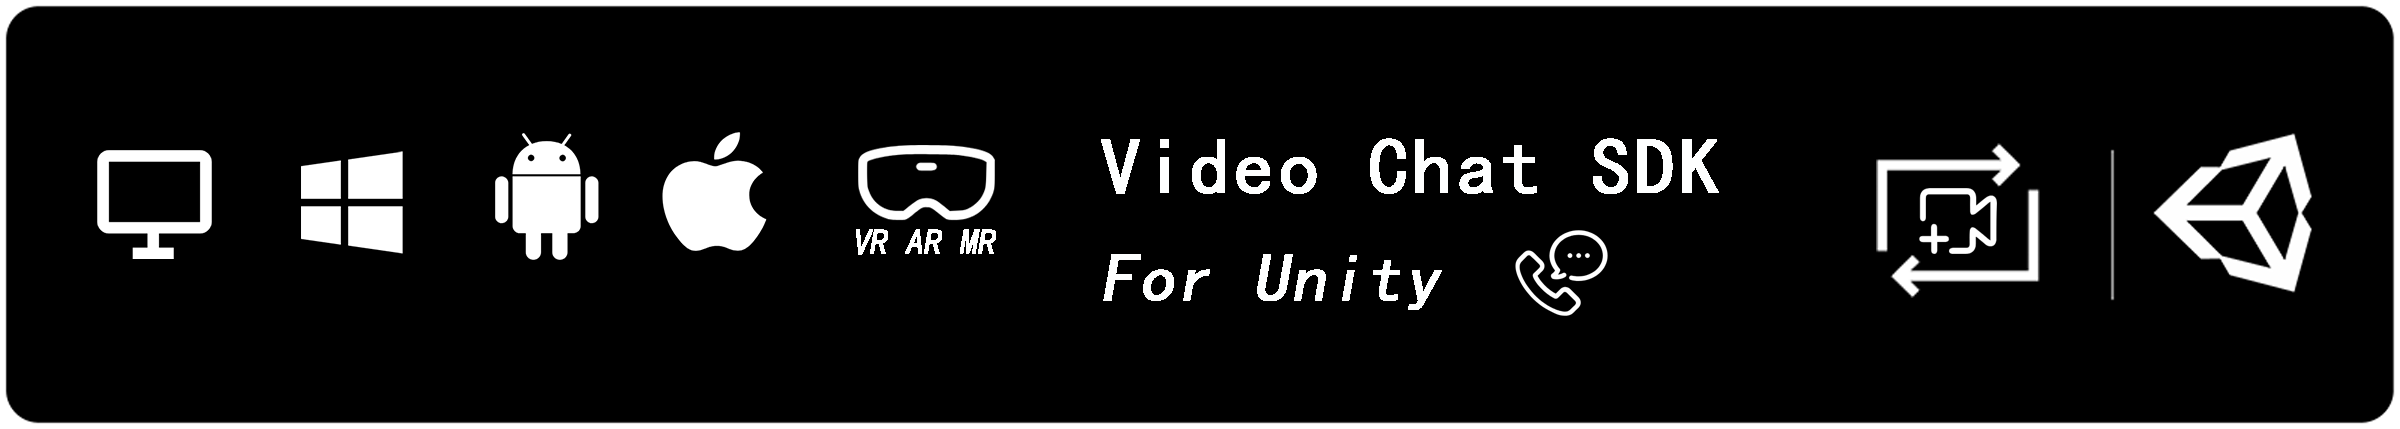 Unity Video Chat SDK